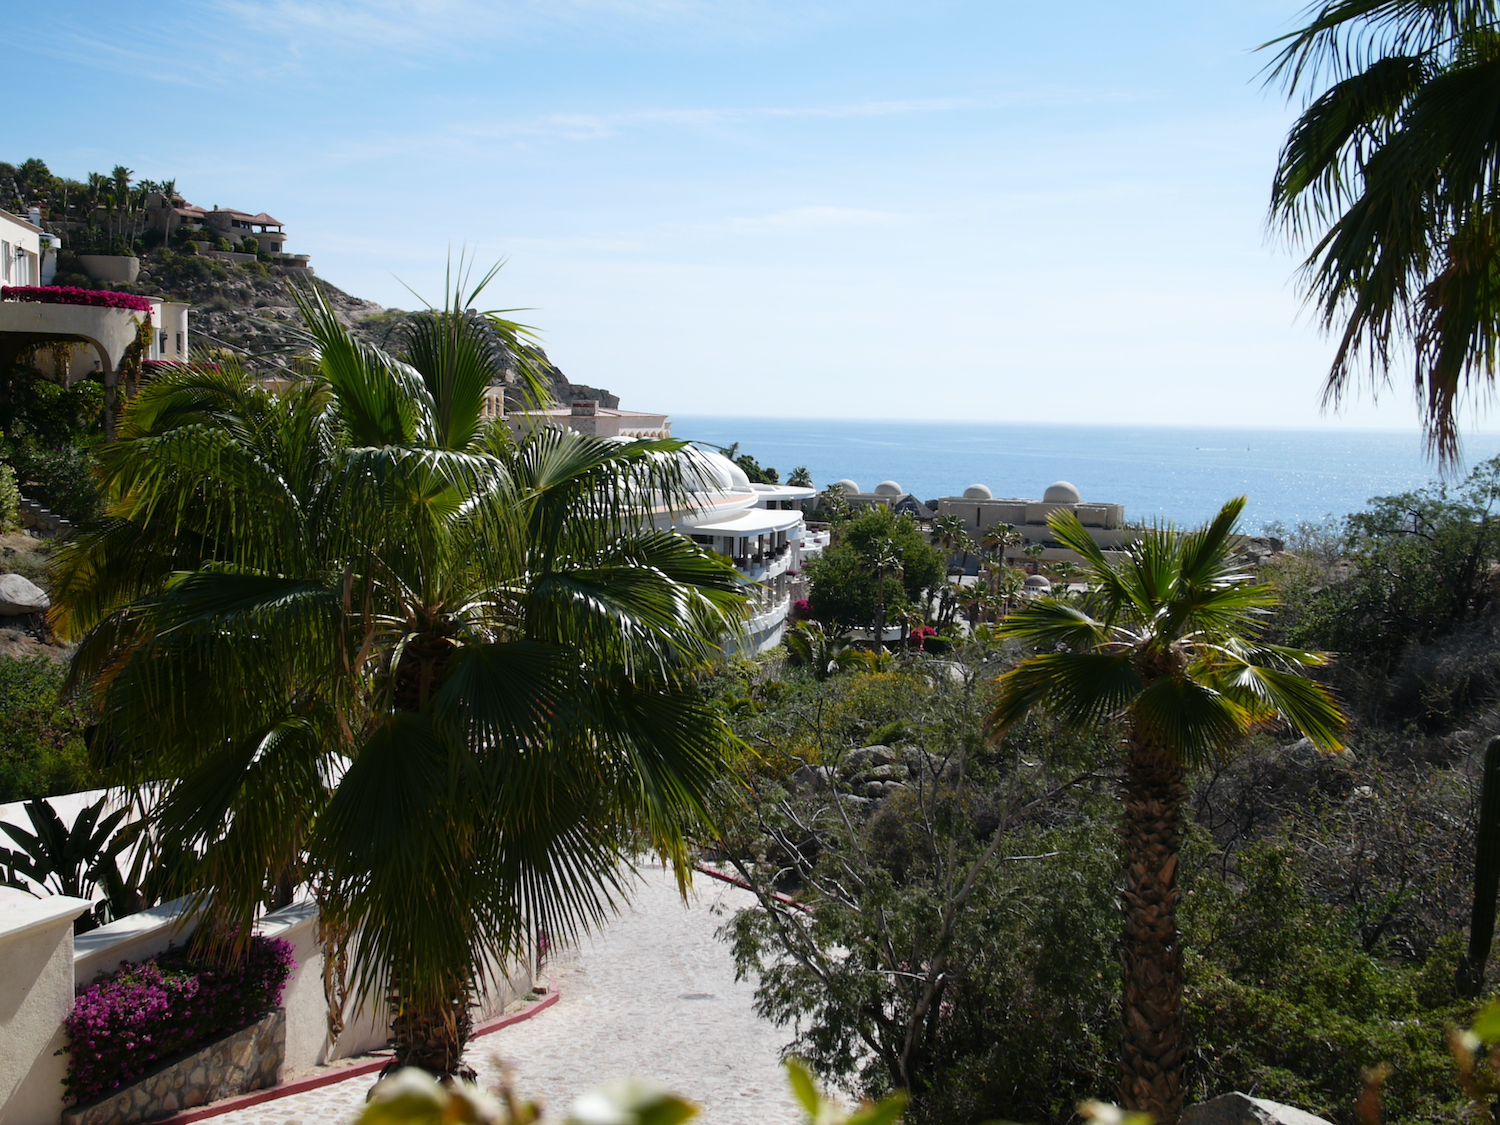 view of Pedregal, Cabo, Mexico